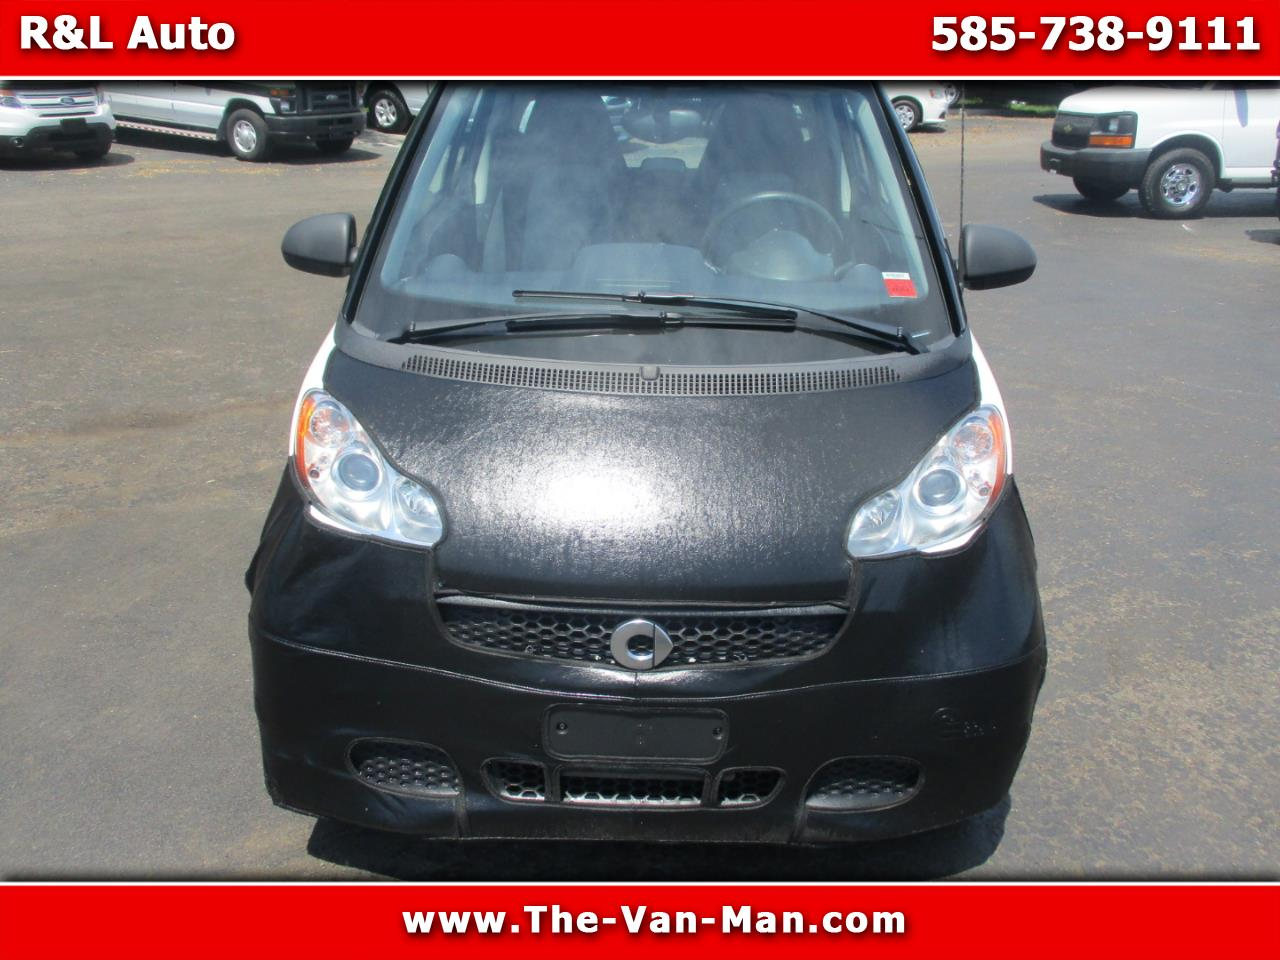 2013 smart Fortwo 2dr Cpe Prime